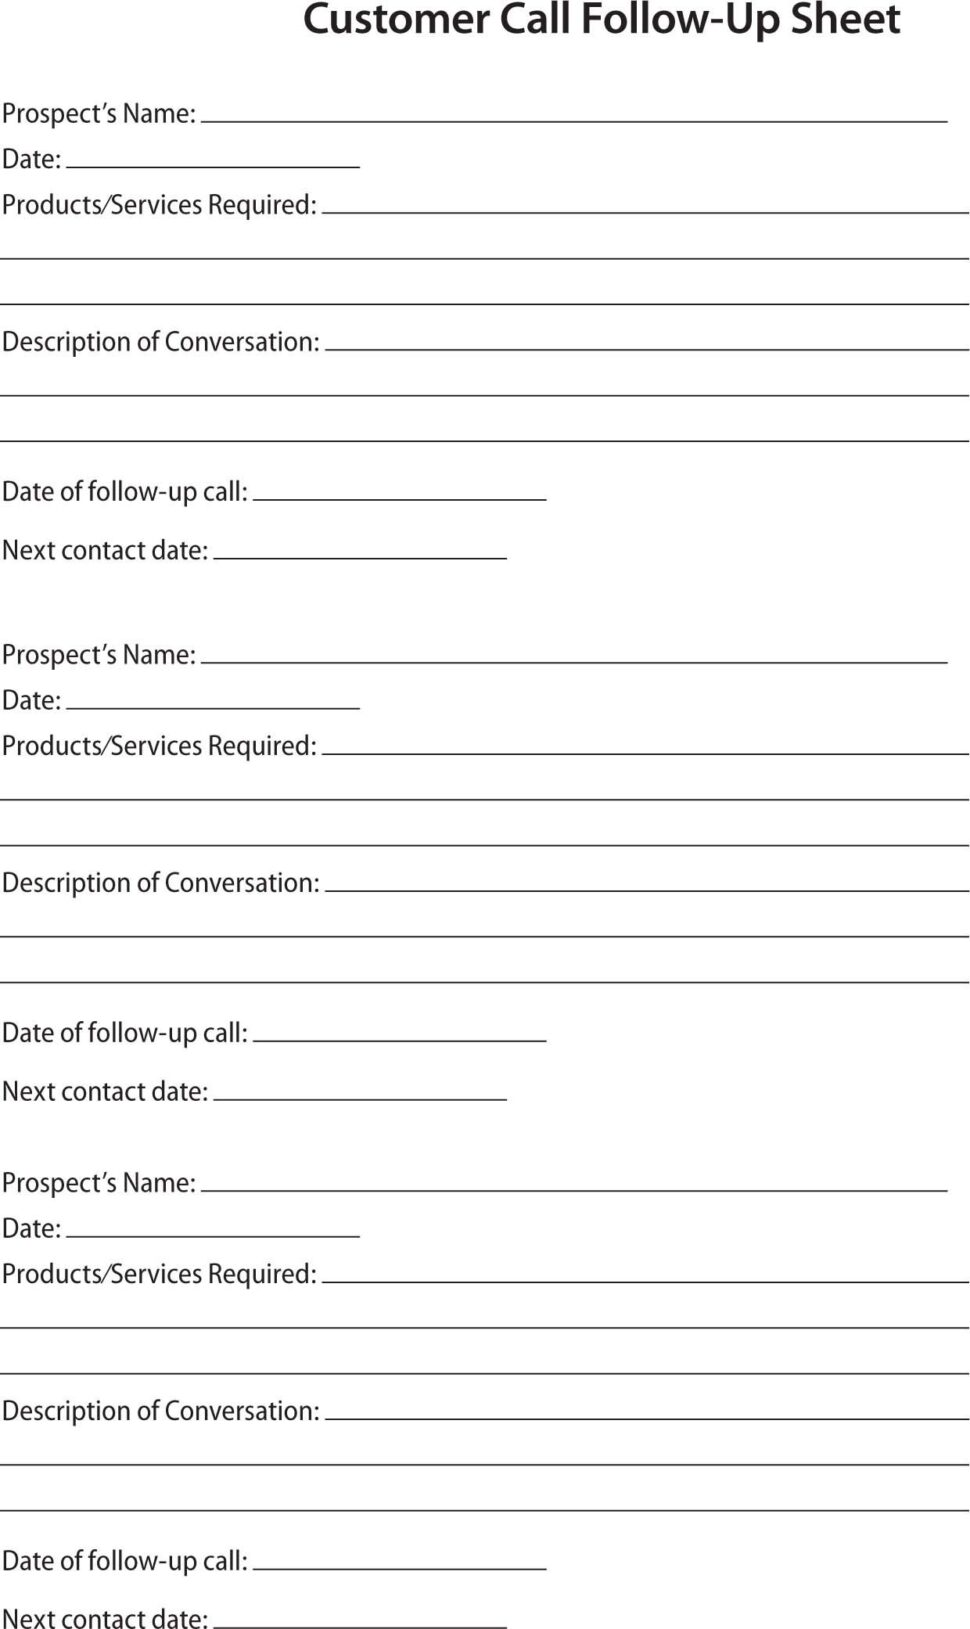 Large Size of Business Partnership Agreement Template Small Payroll 4 Sided Follow Up Sheet